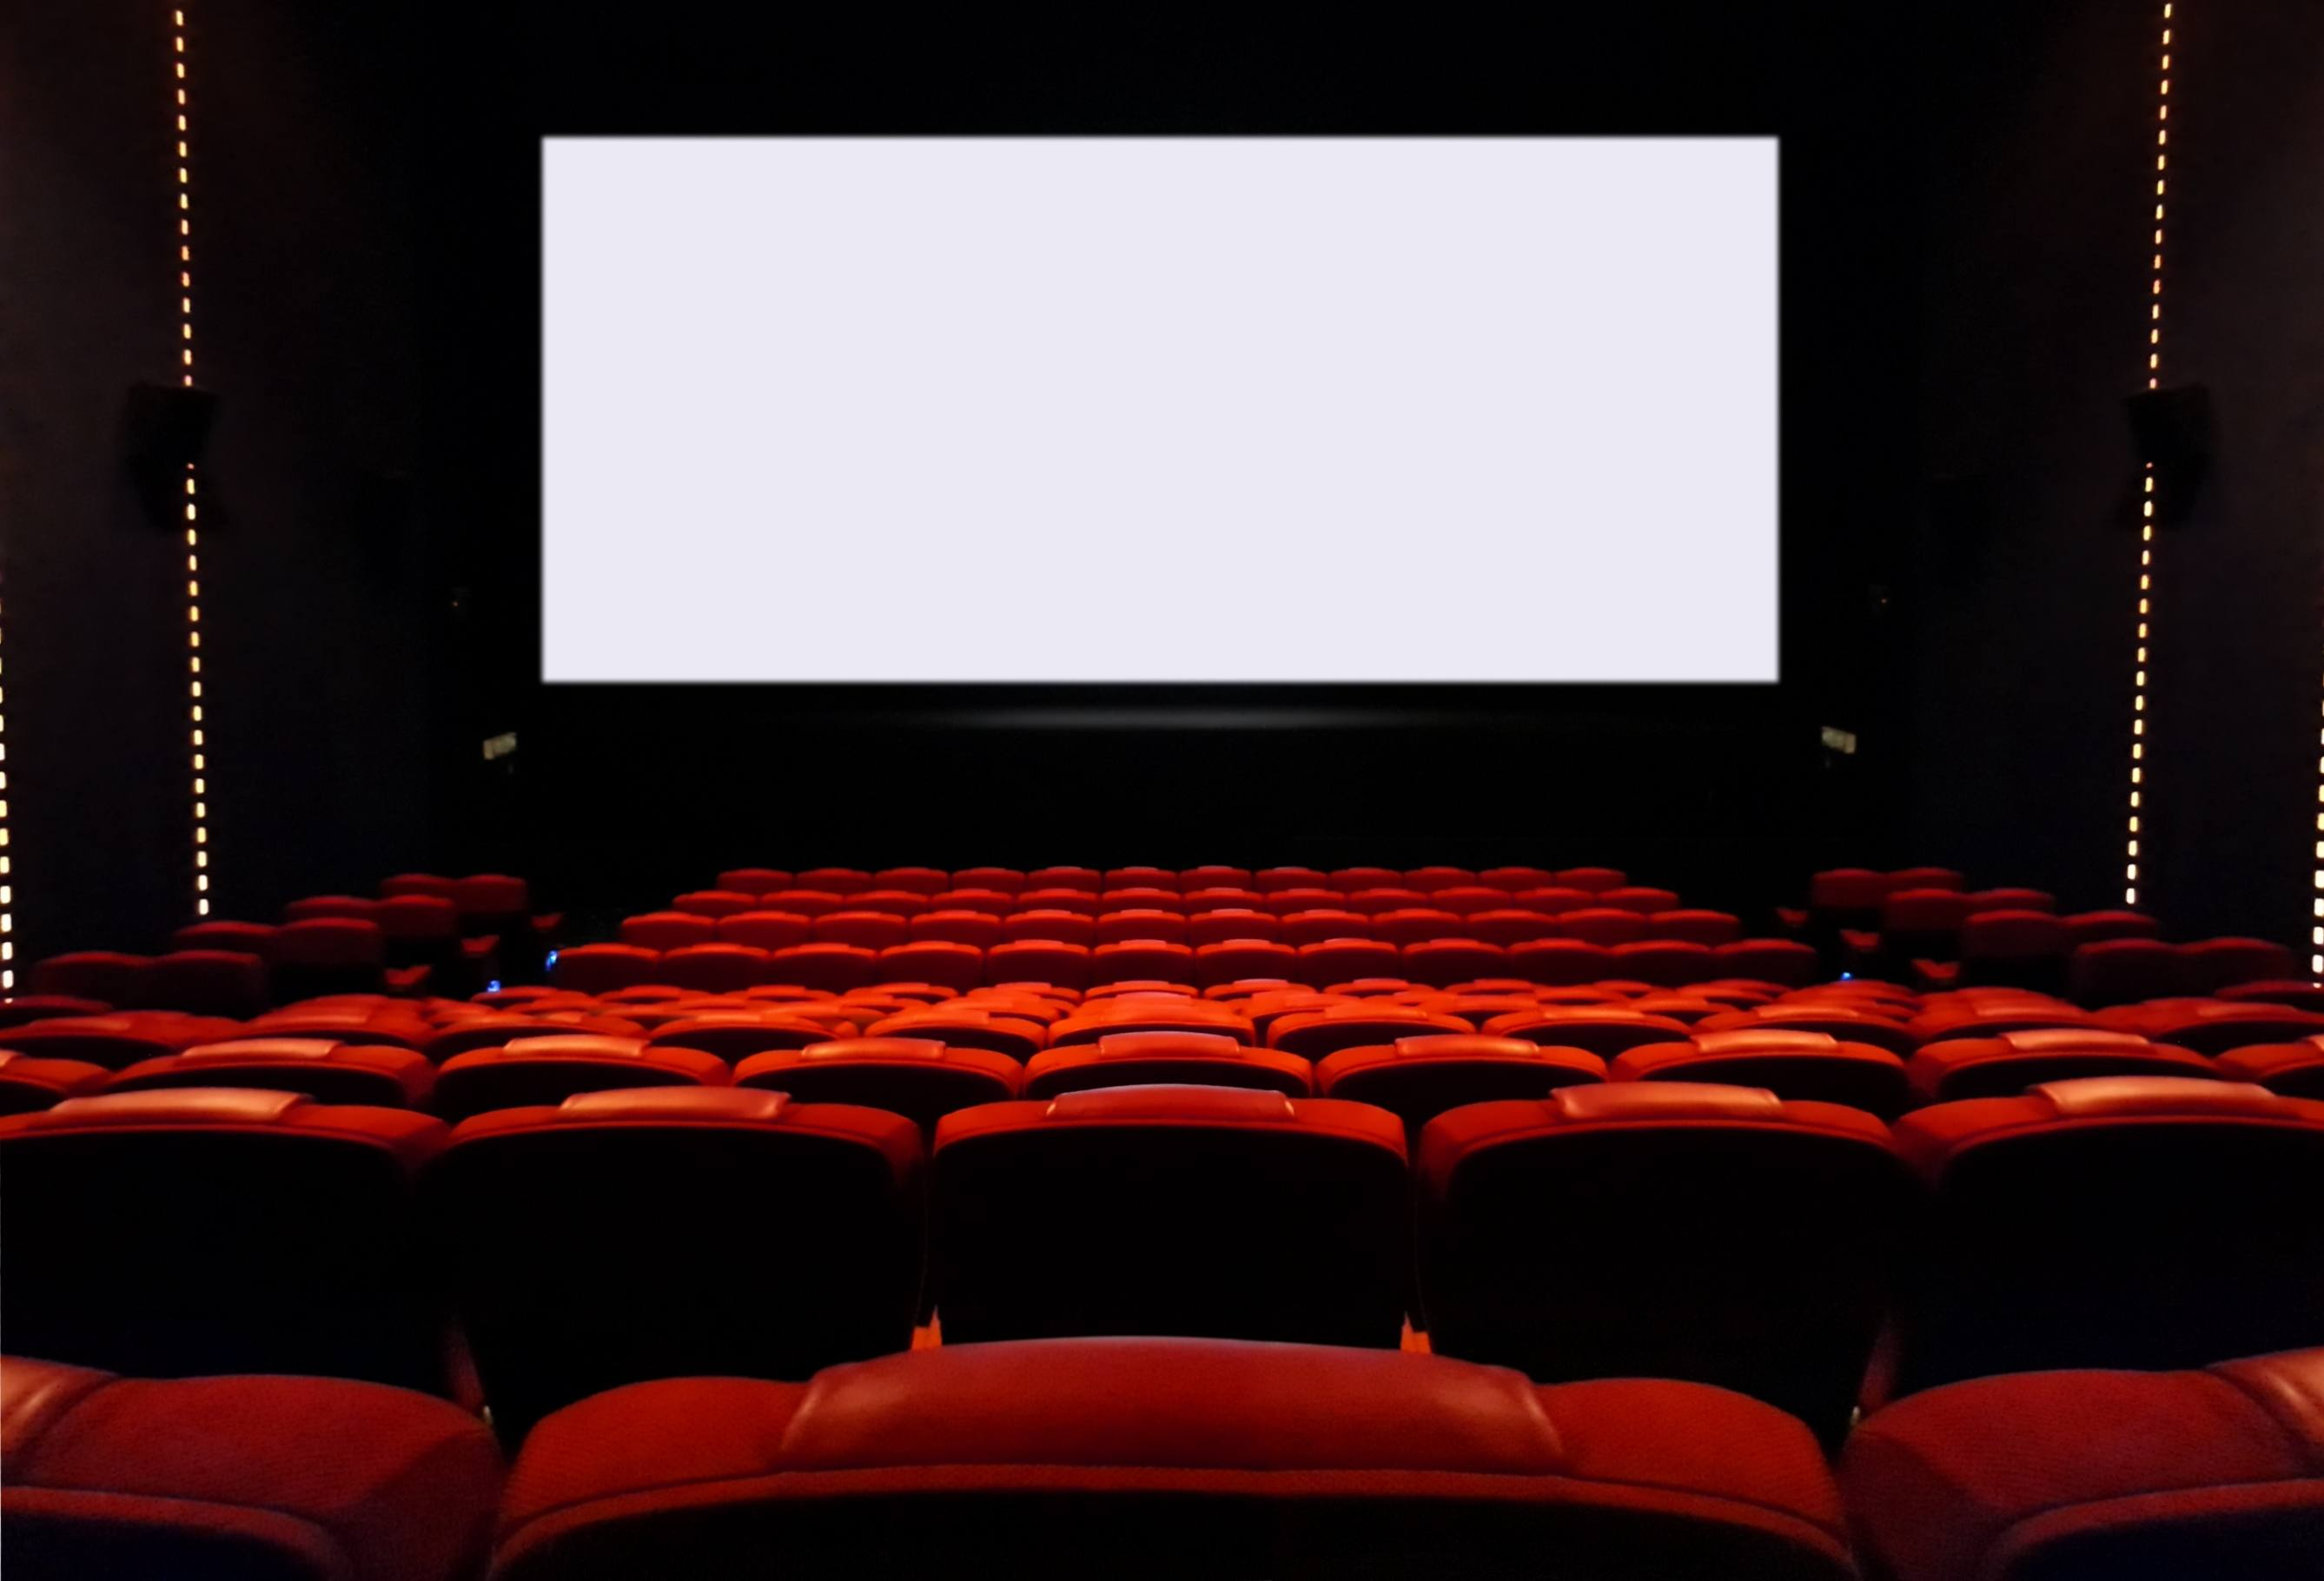 screen hollywood theater movie cinema blank seats empty body cleaner believe